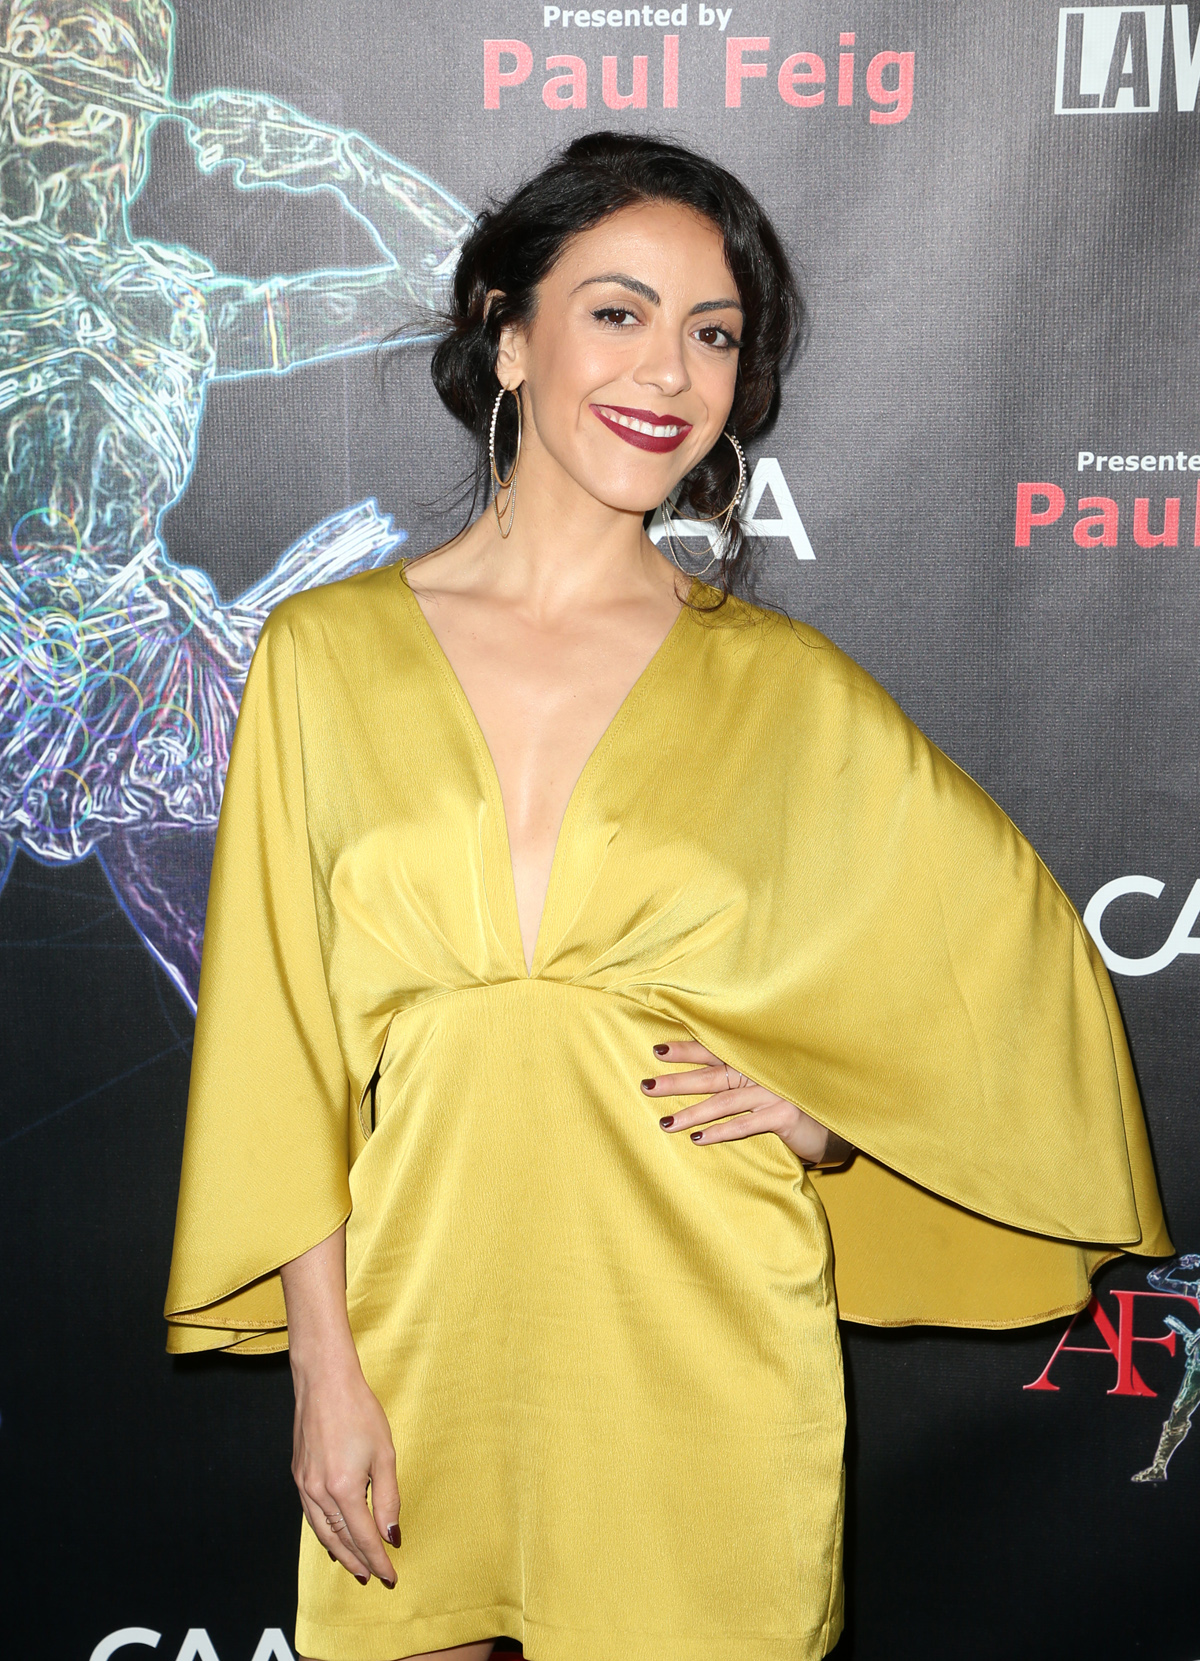 BEVERLY HILLS, CA - APRIL 26: Grace Parra, at the 2018 Artemis Awards Gala at the Ahrya Fine Arts Theater in Beverly Hills, California on April 26, 2018. Credit: Faye Sadou/MediaPunch